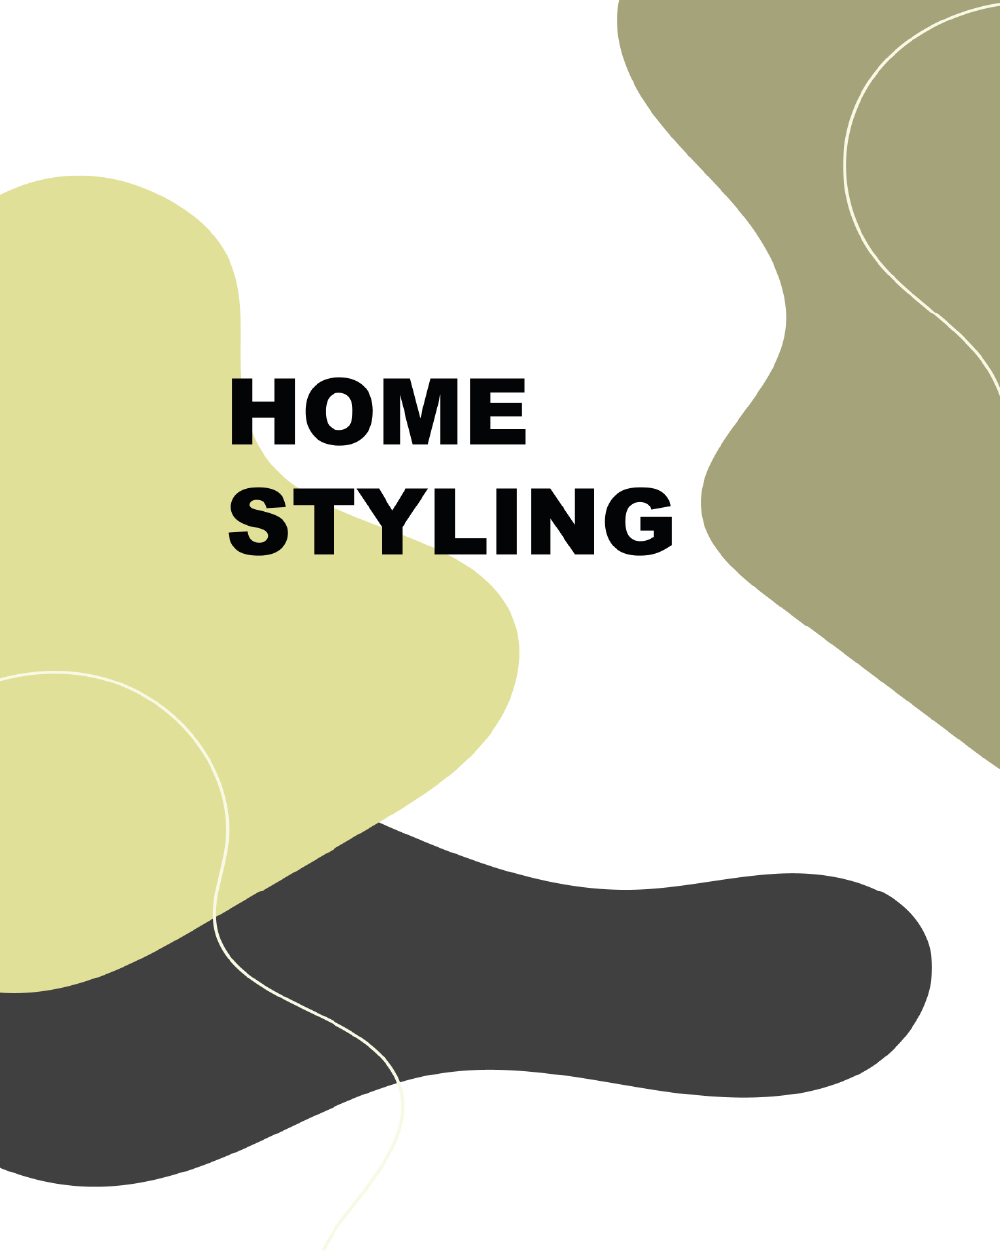 home styling-100